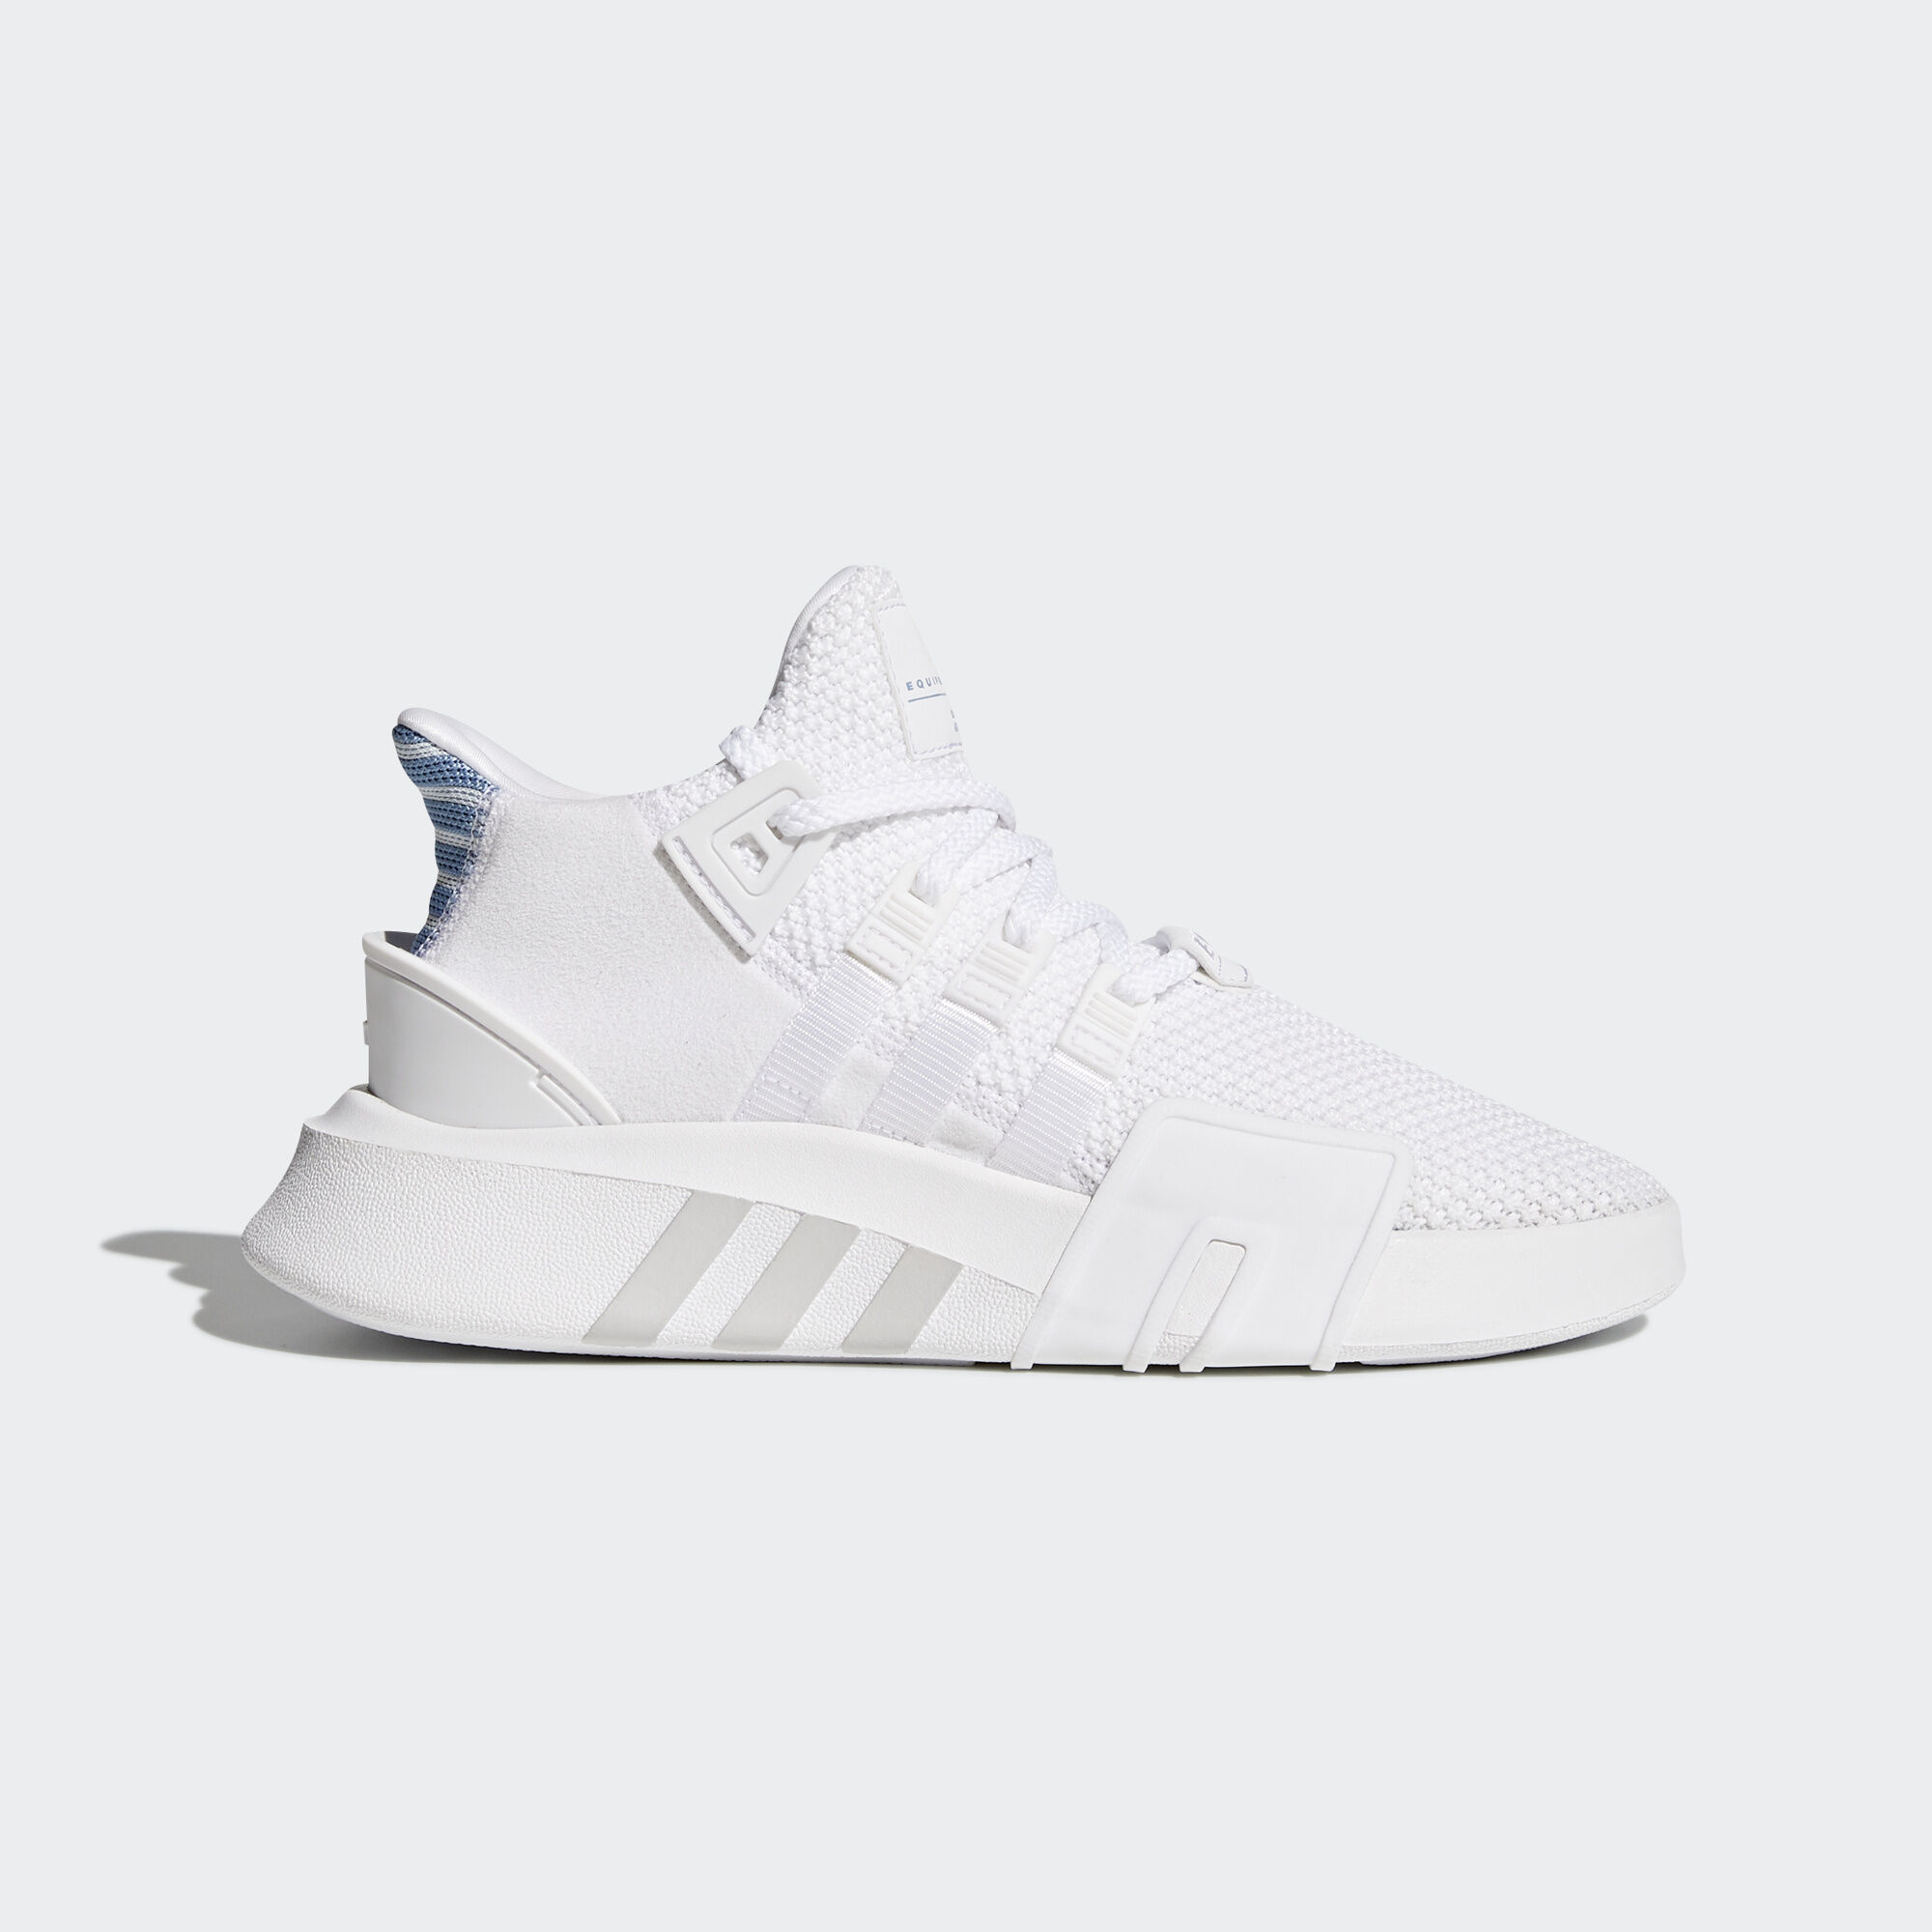 ... adidas - EQT Bask ADV Shoes Ftwr WhiteFtwr WhiteAsh Blue AC7354 adidas  Originals EQT Support ... a29e9373a